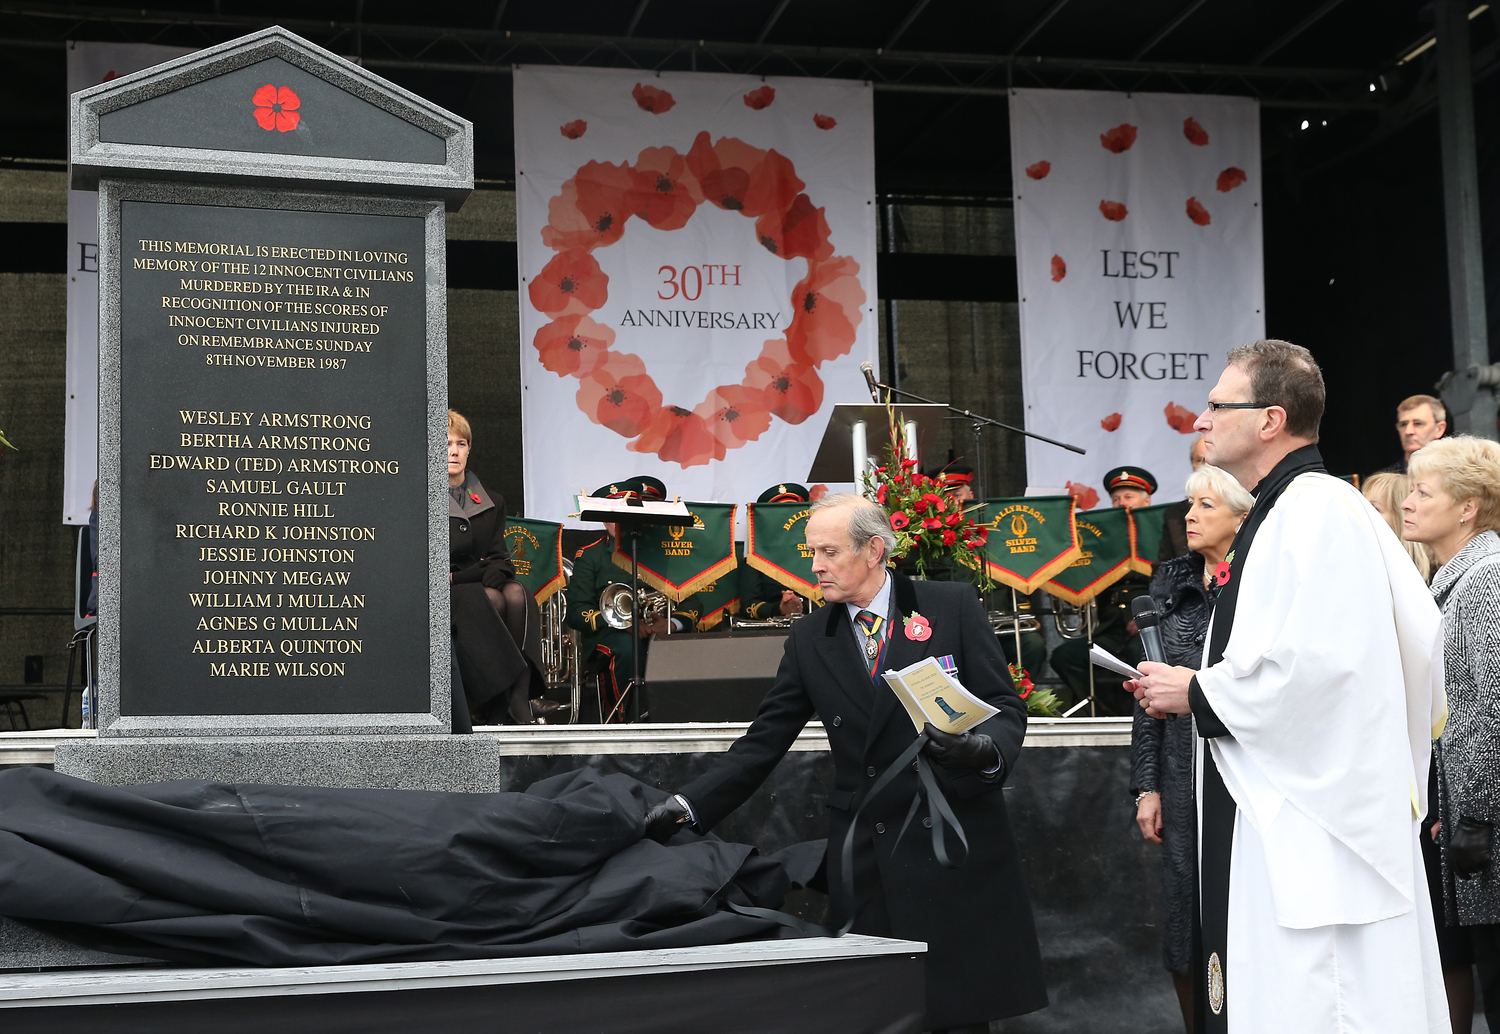 A memorial was unveiled, but has yet to be put in place, to mark the 30th anniversary of the Enniskillen bombing